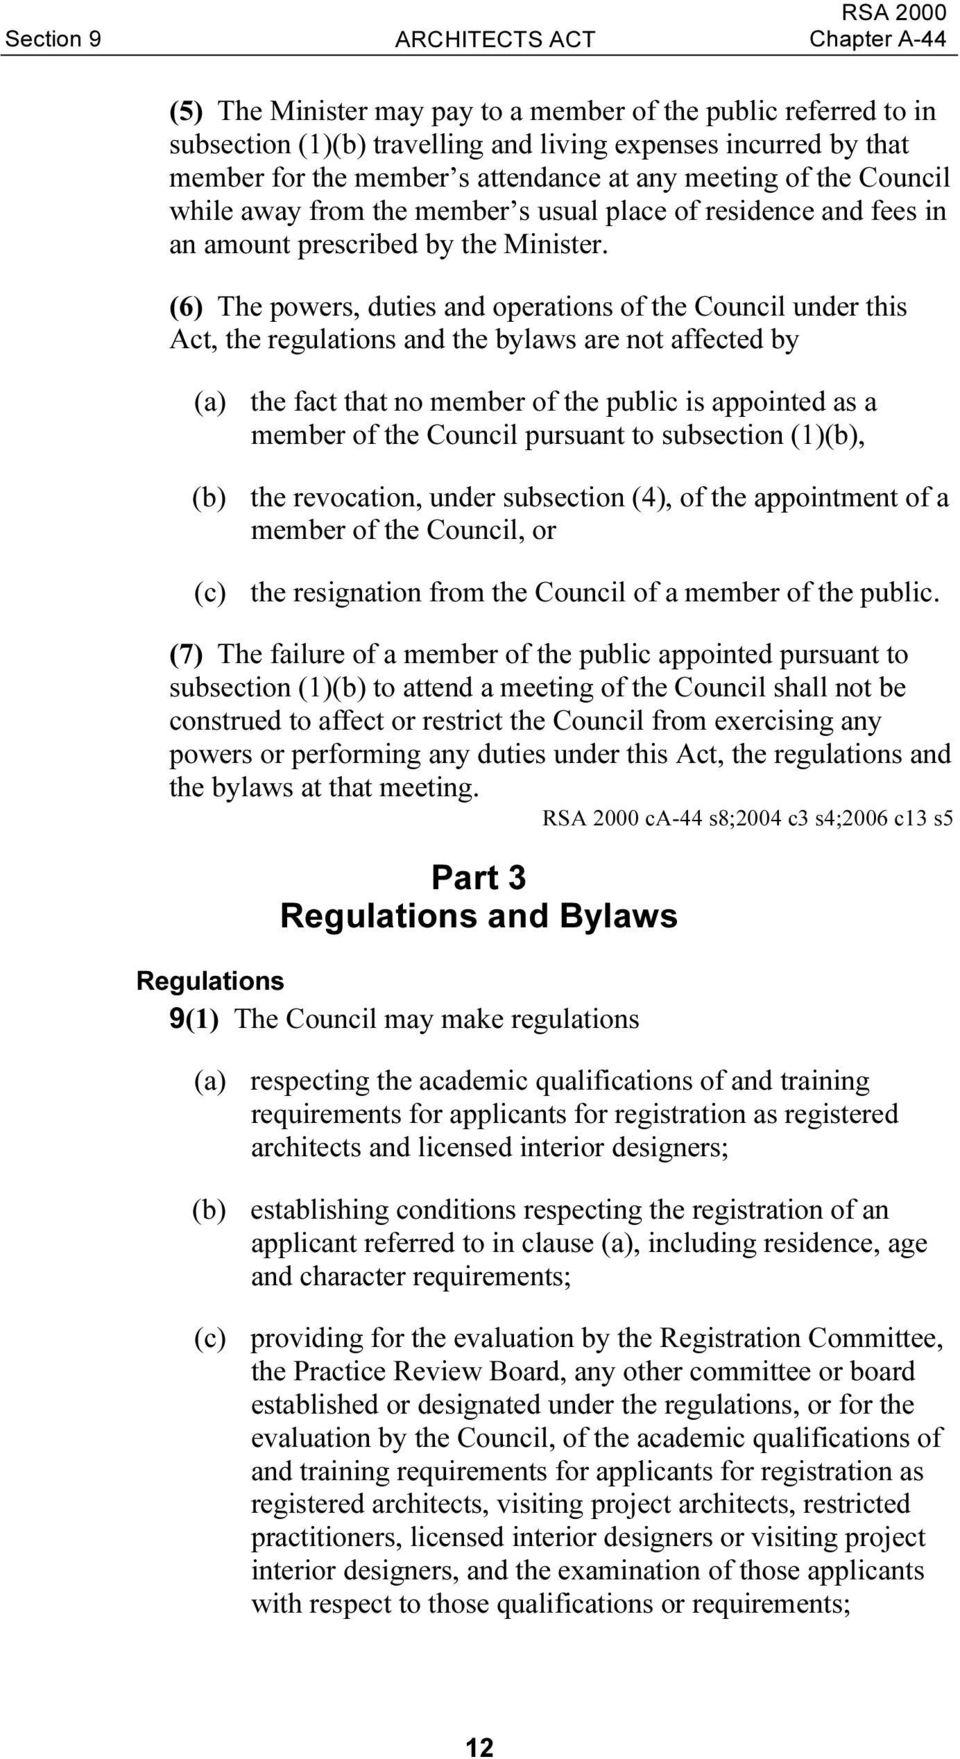 (6) The powers, duties and operations of the Council under this Act, the regulations and the bylaws are not affected by (a) the fact that no member of the public is appointed as a member of the